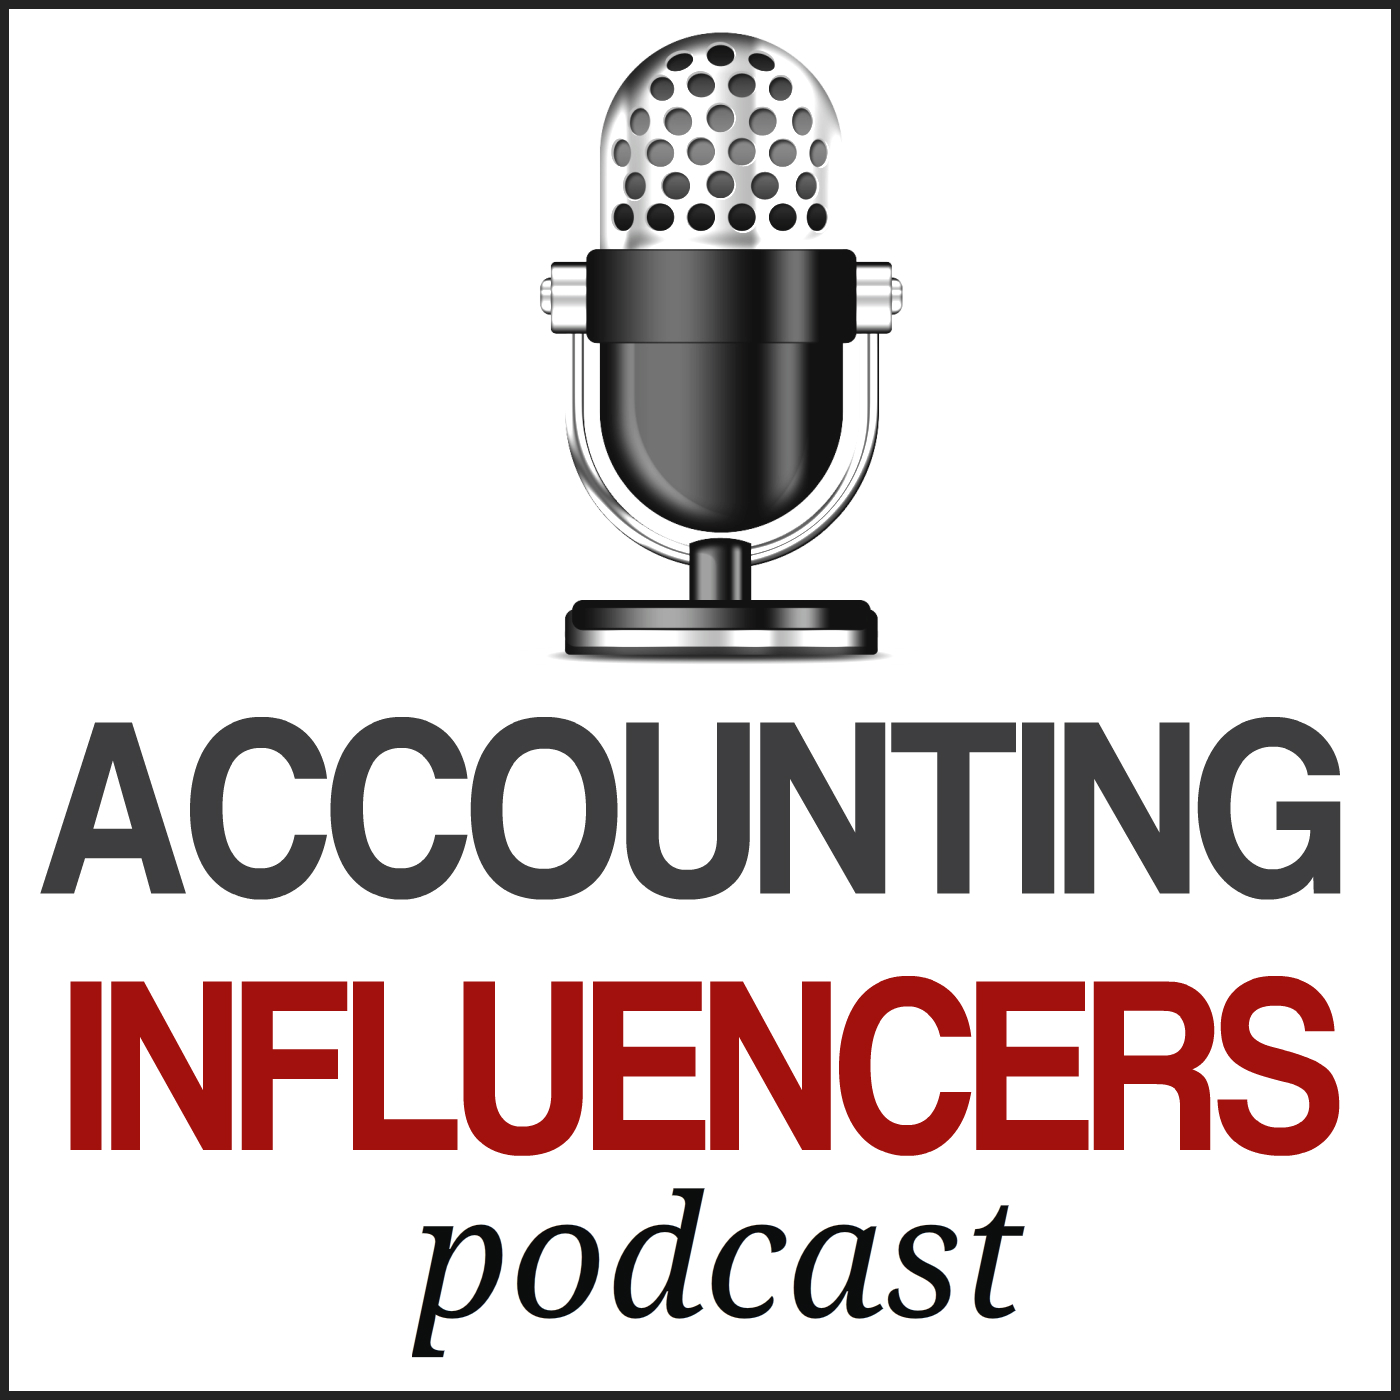 Accounting Influencers podcast with founder of the Business Development Academy Rob Brown